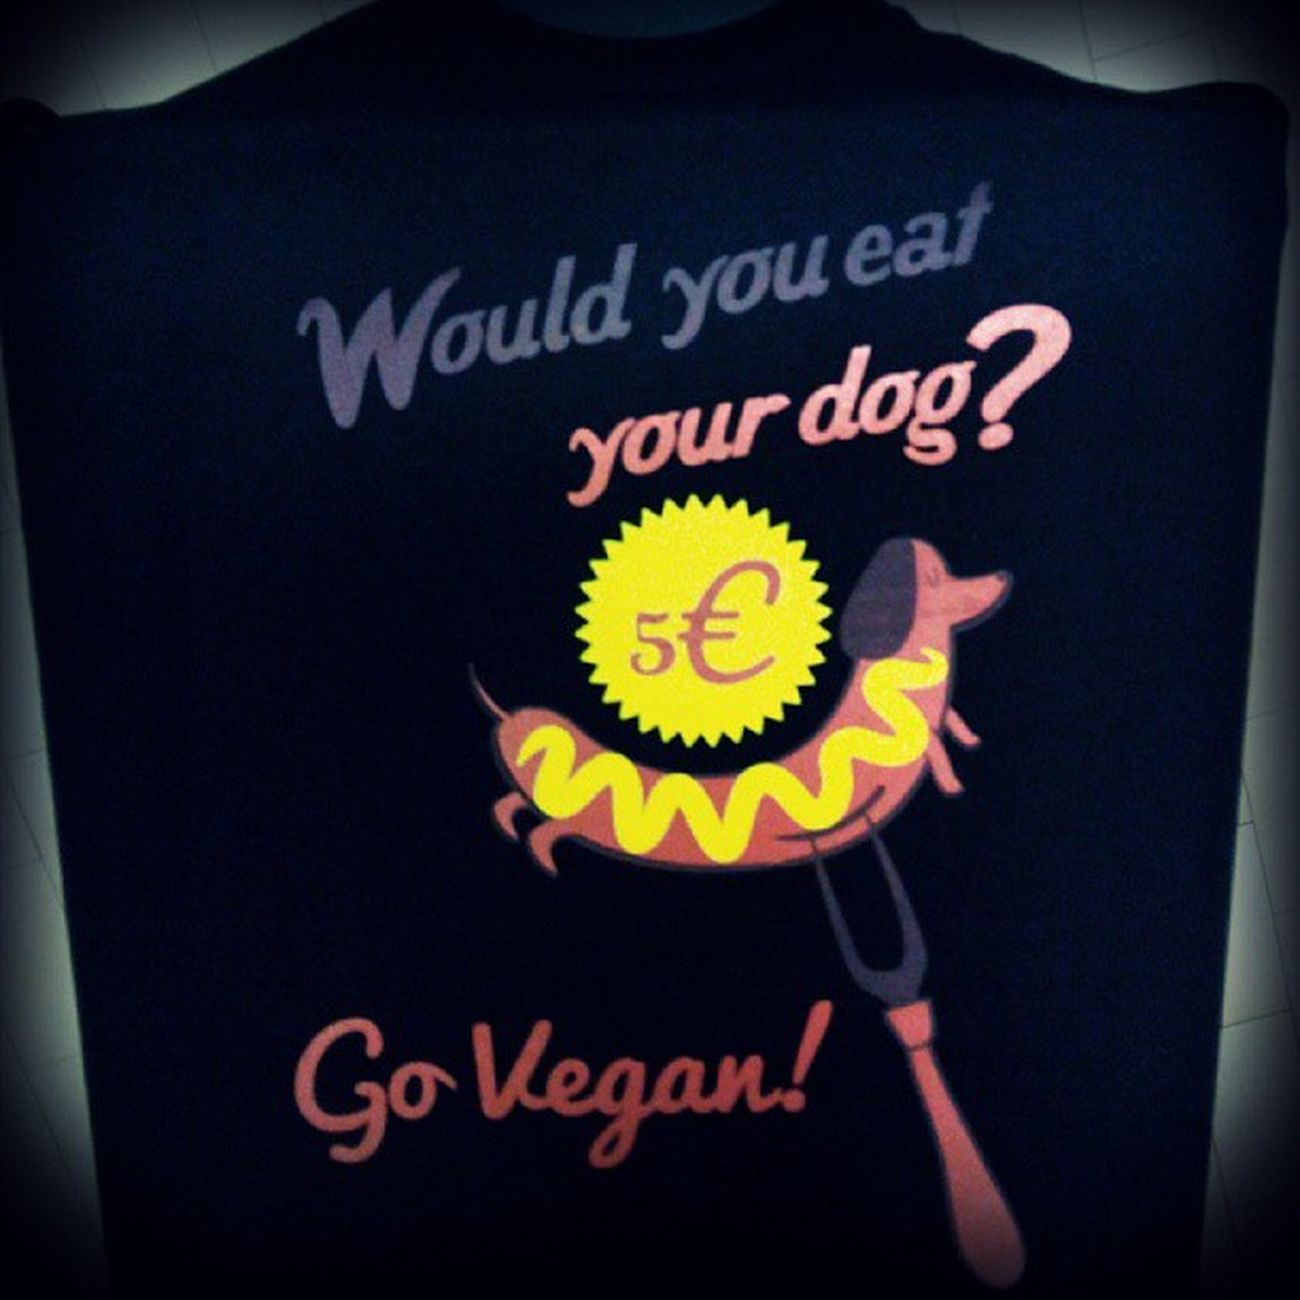 """Would you eat your dog?"" #tshirt #vegantshirts #dog #vegfestuk #vegan #crueltyfree #antispeciesism Dog Vegan Tshirt Crueltyfree Vegantshirts Antispeciesism Vegfestuk"